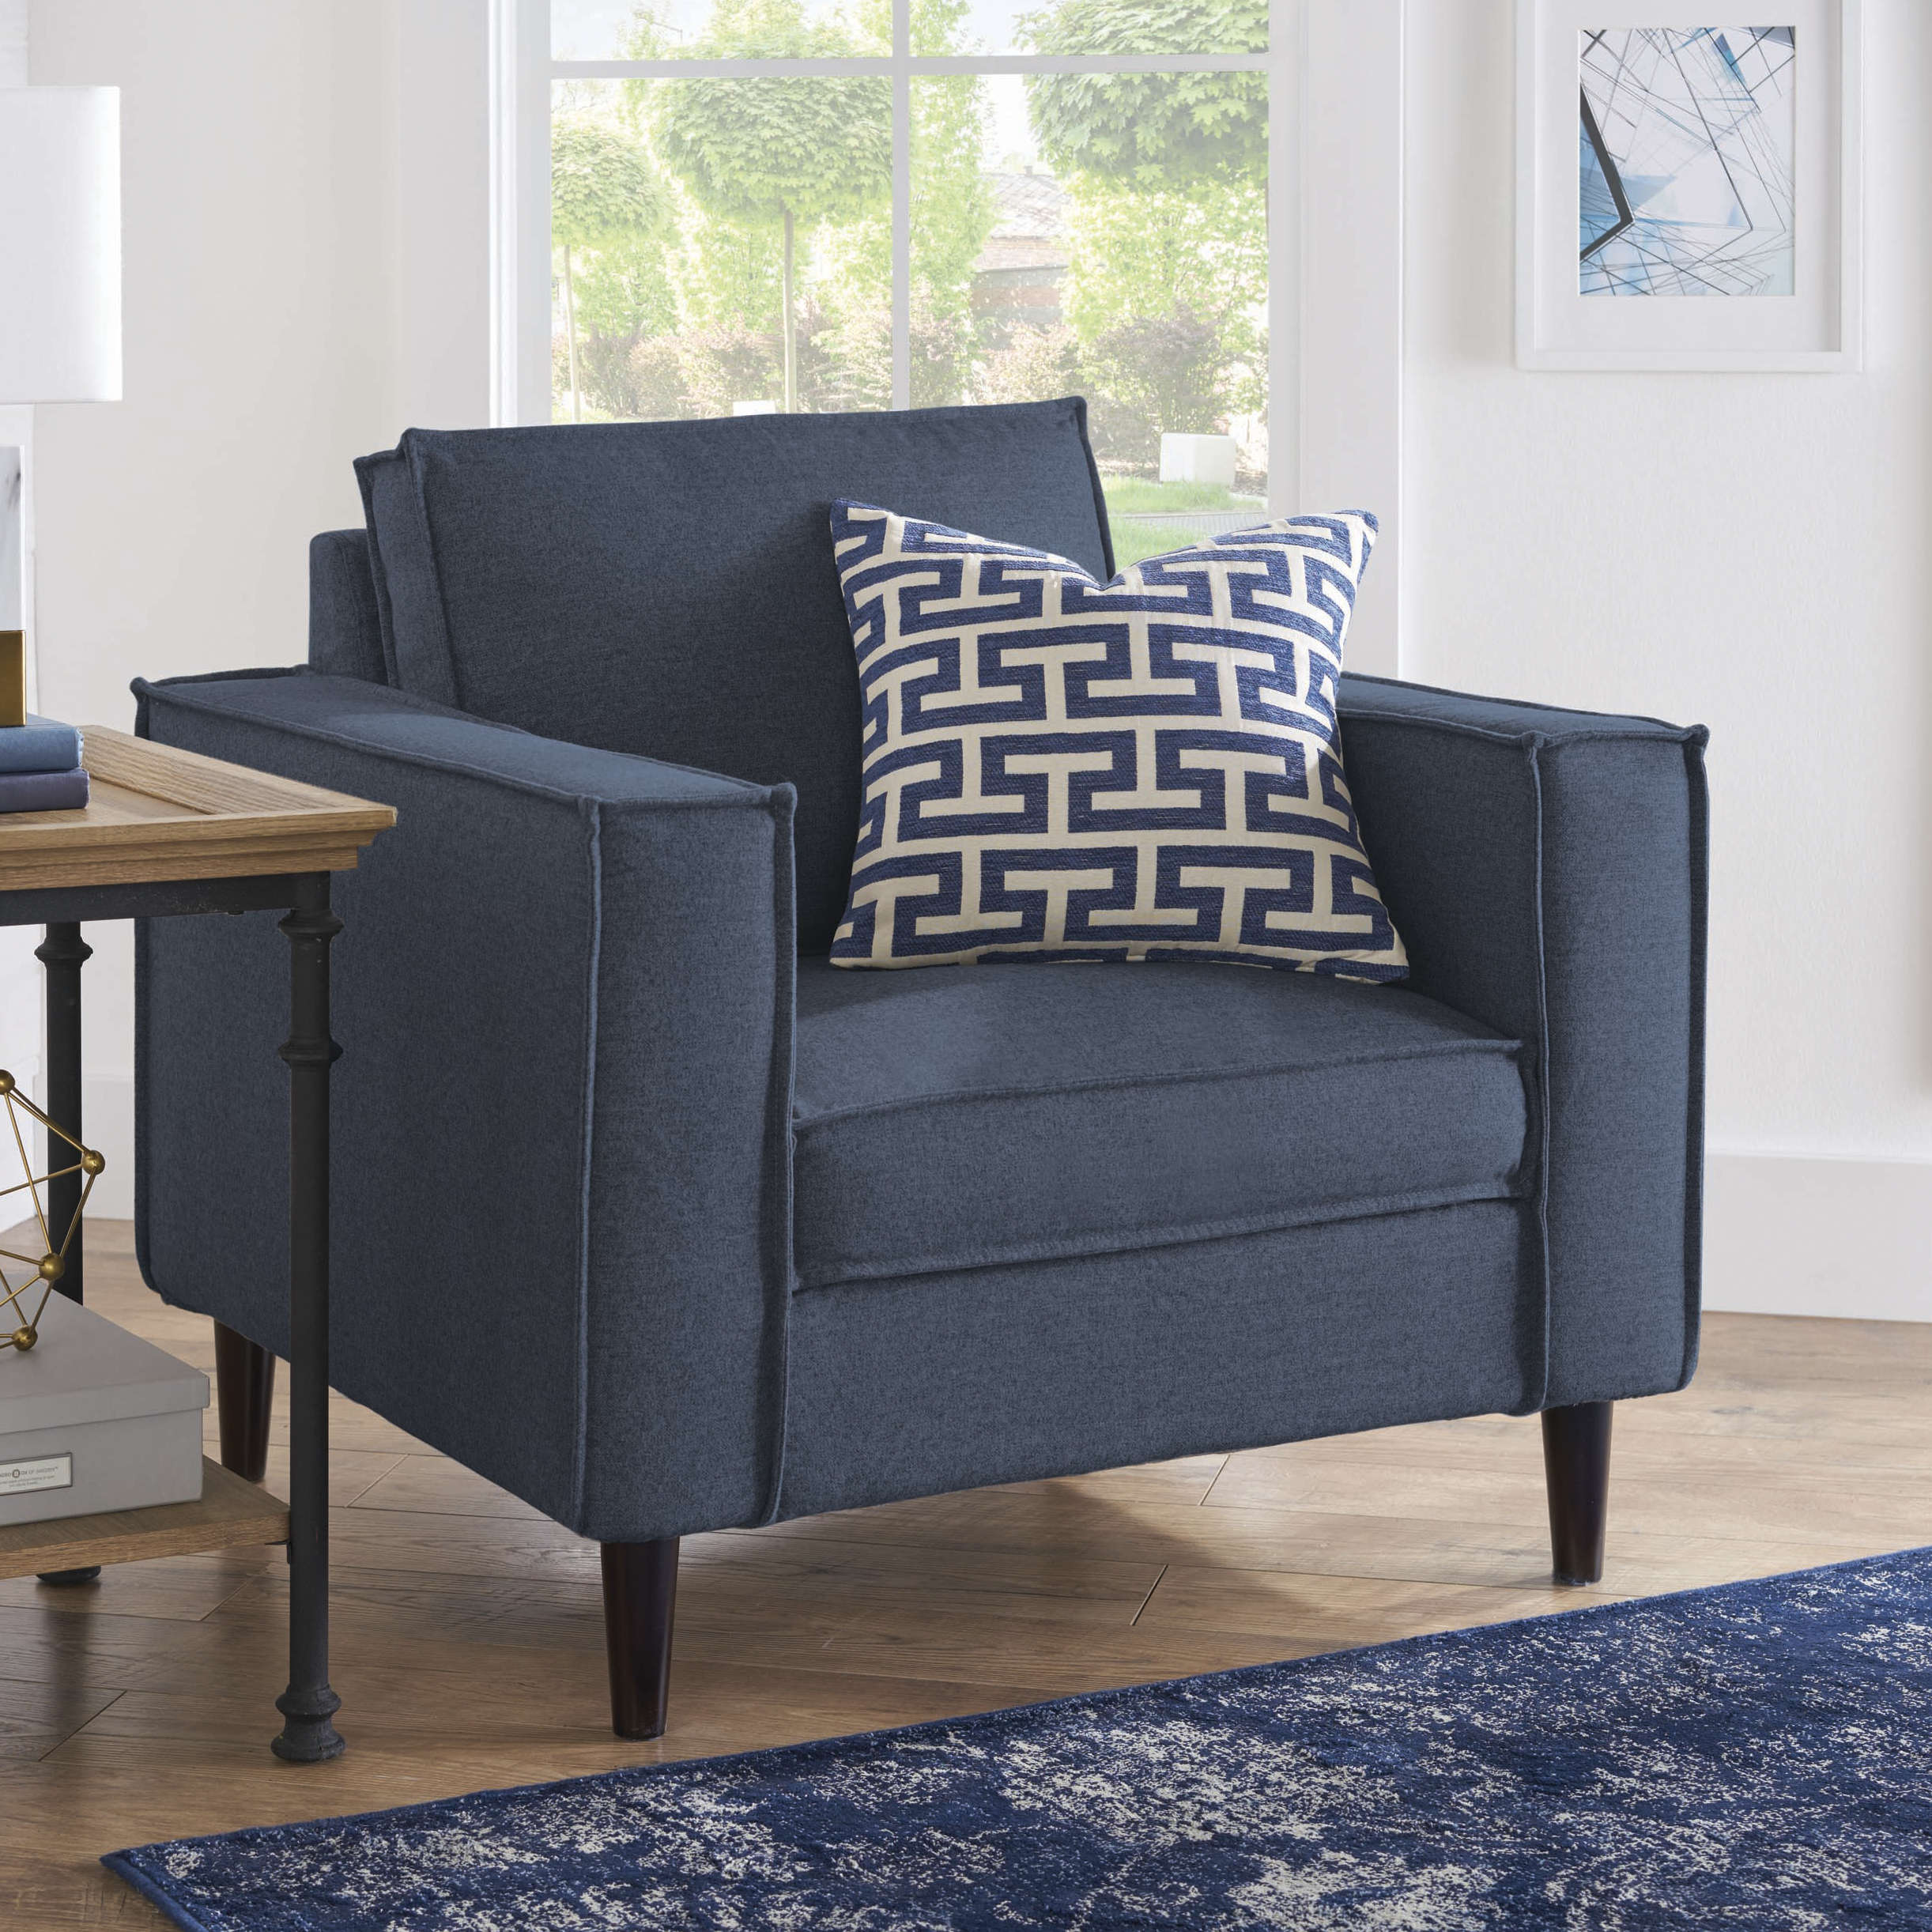 Better Homes & Gardens Campbell Chair, Multiple Colors